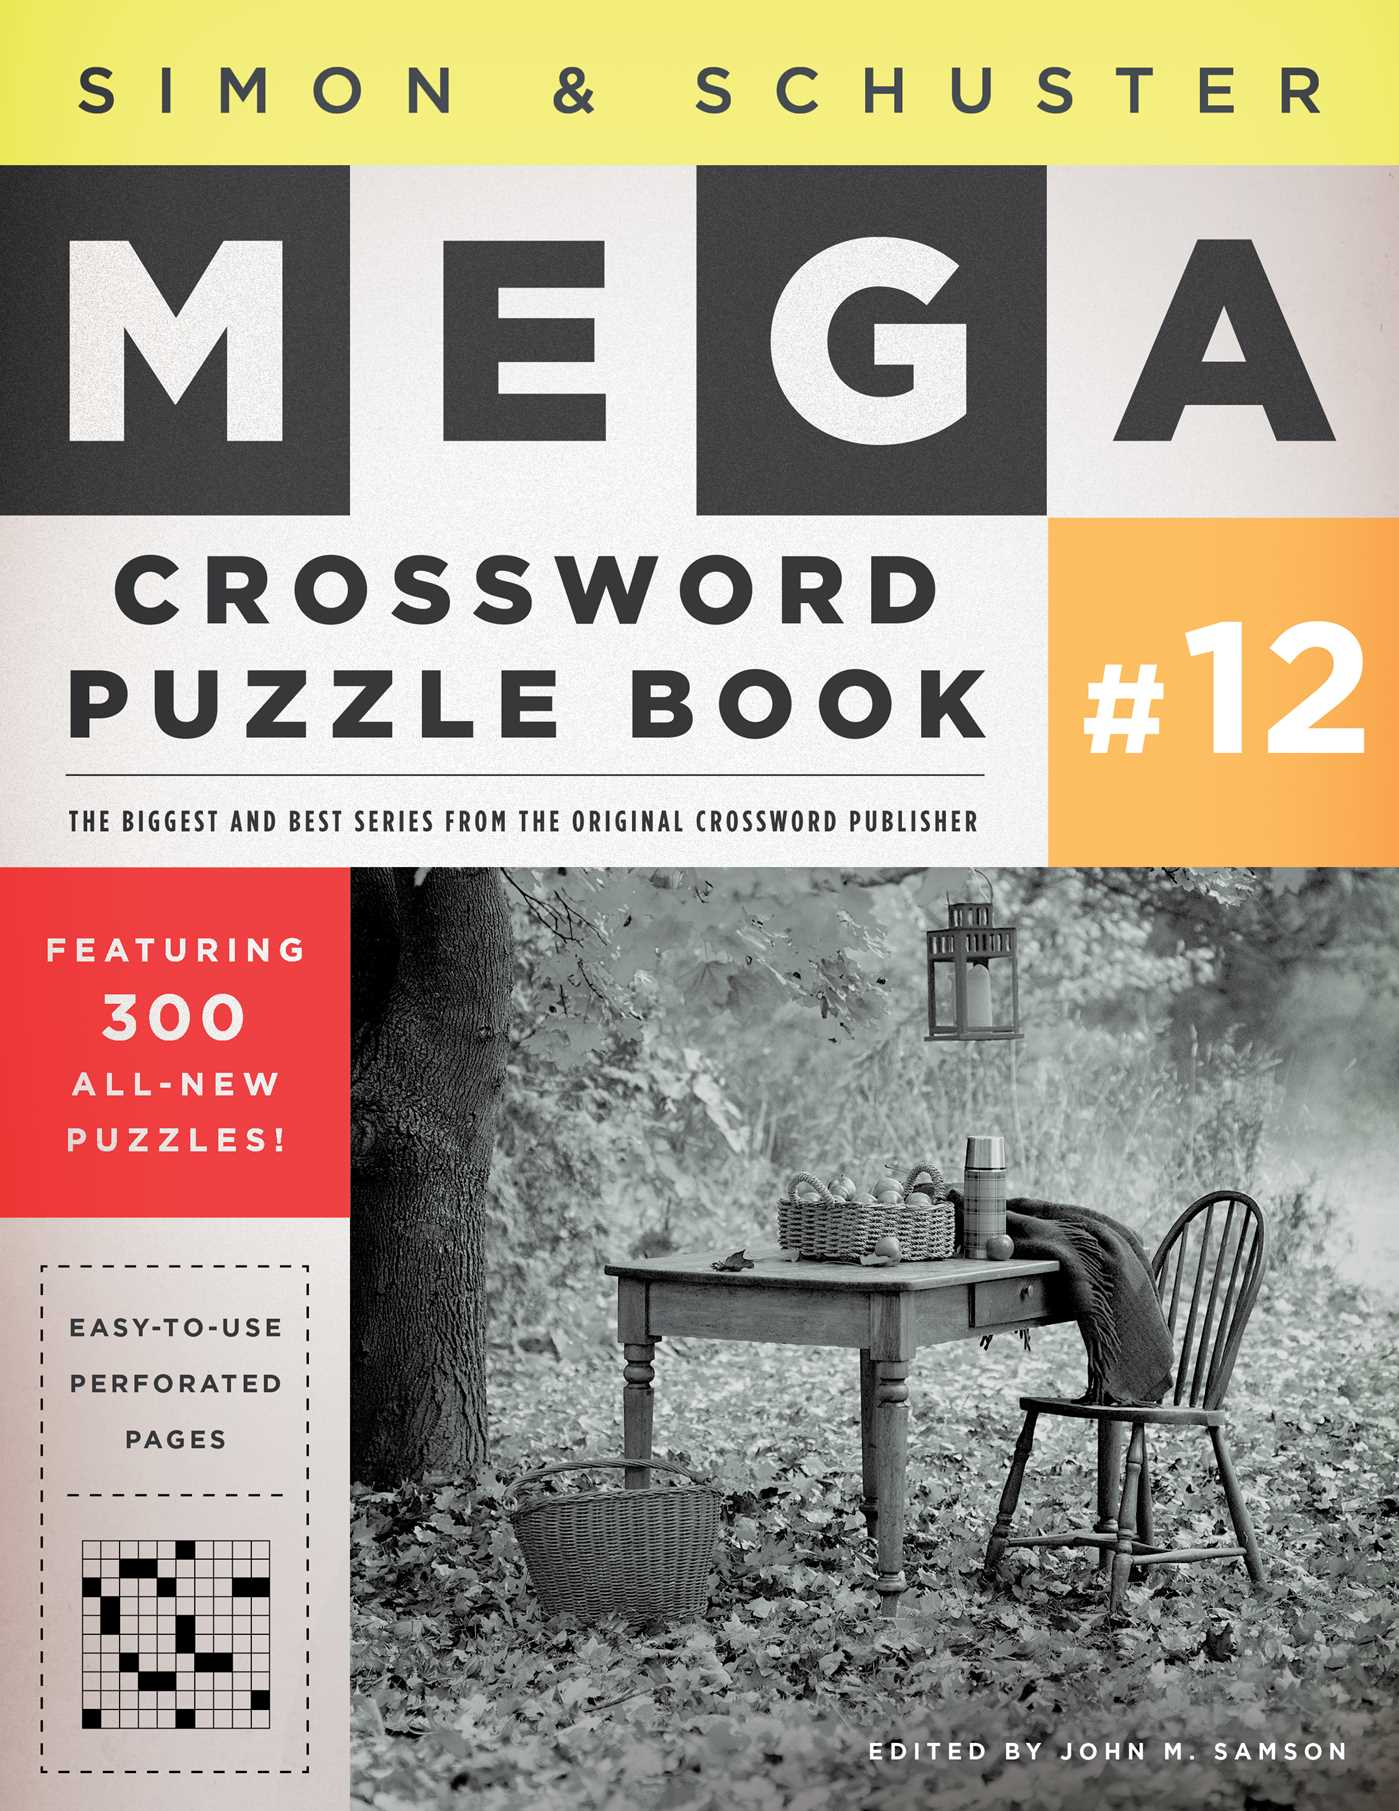 Simon-schuster-mega-crossword-puzzle-book-12-9781451627404_hr